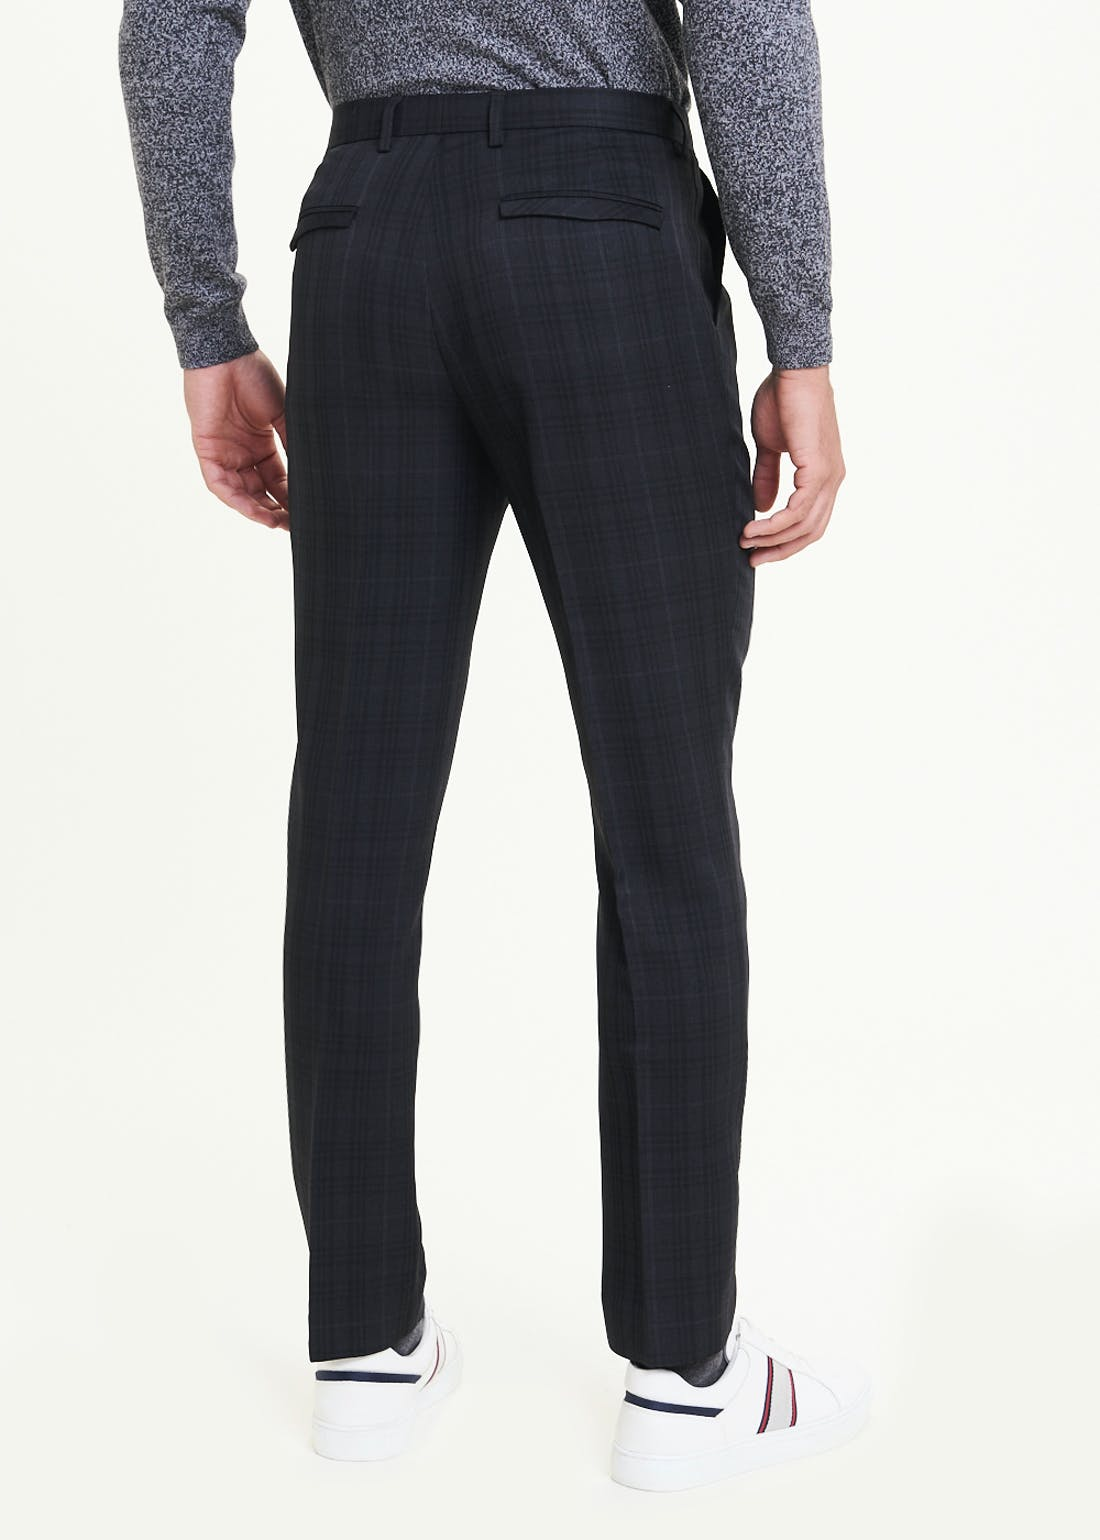 Taylor & Wright Alford Slim Fit Check Trousers